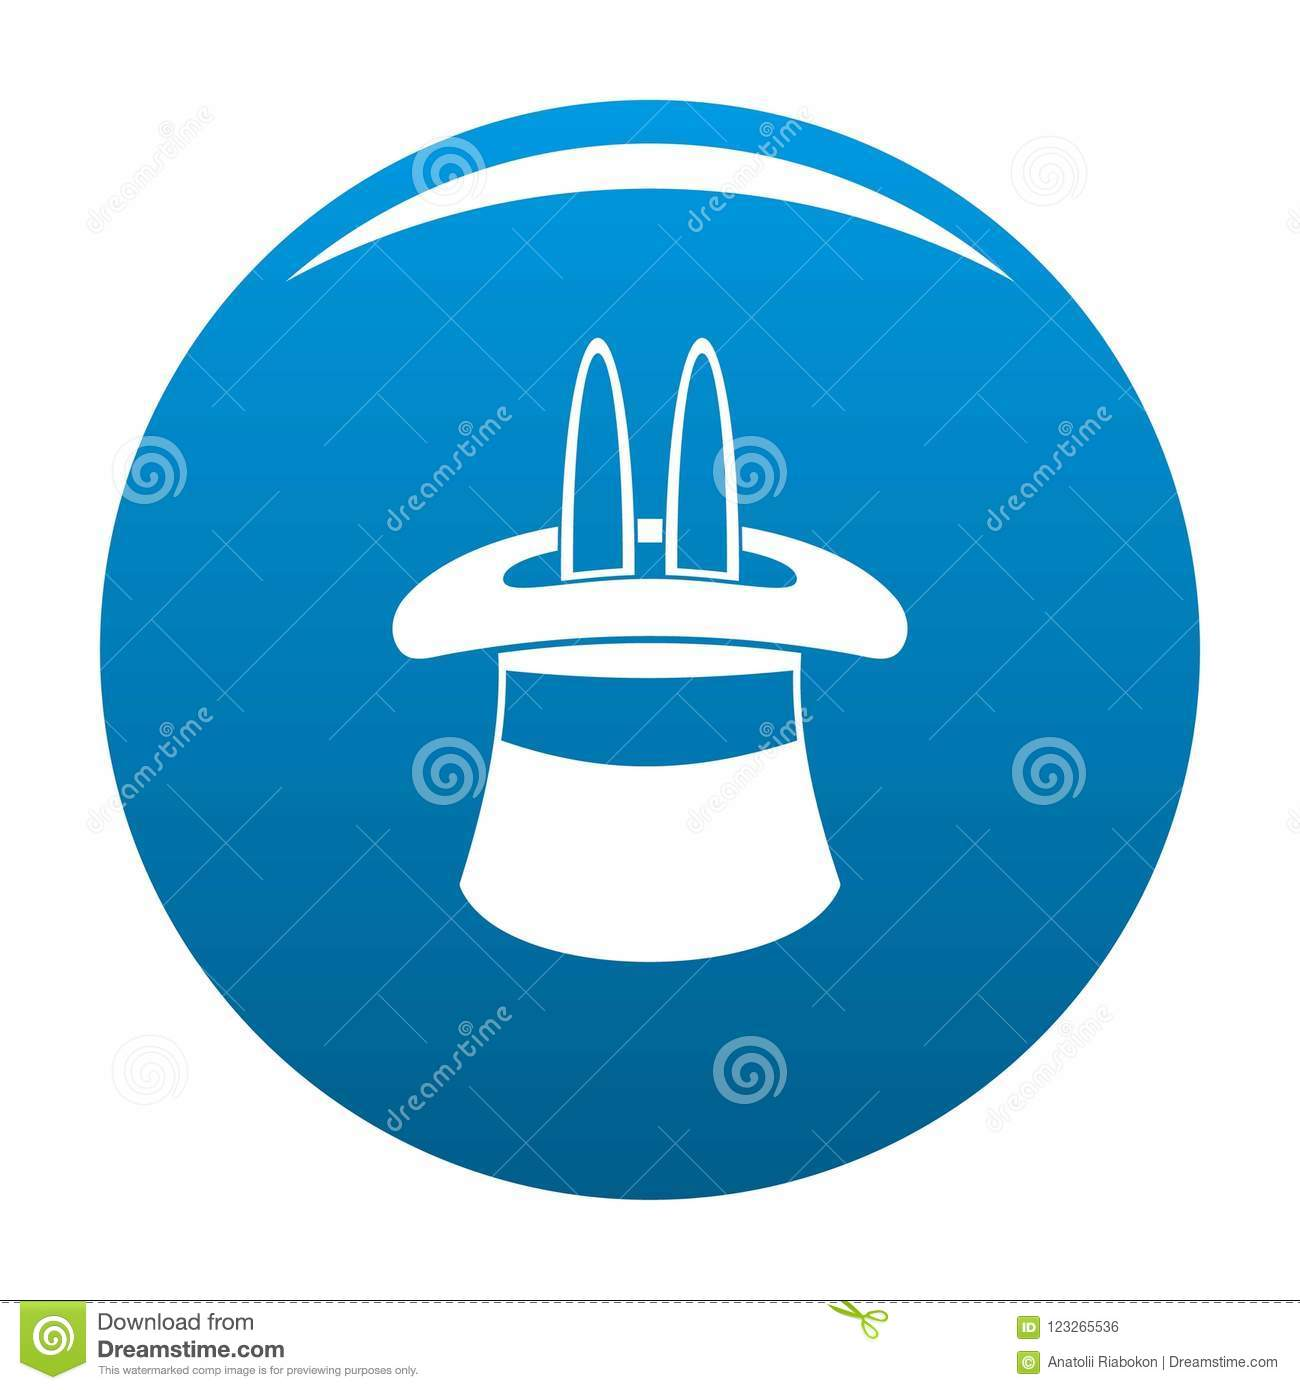 Hat With A Rabbit Ear Icon Blue Stock Illustration - Illustration of ... f4c51c0b9275